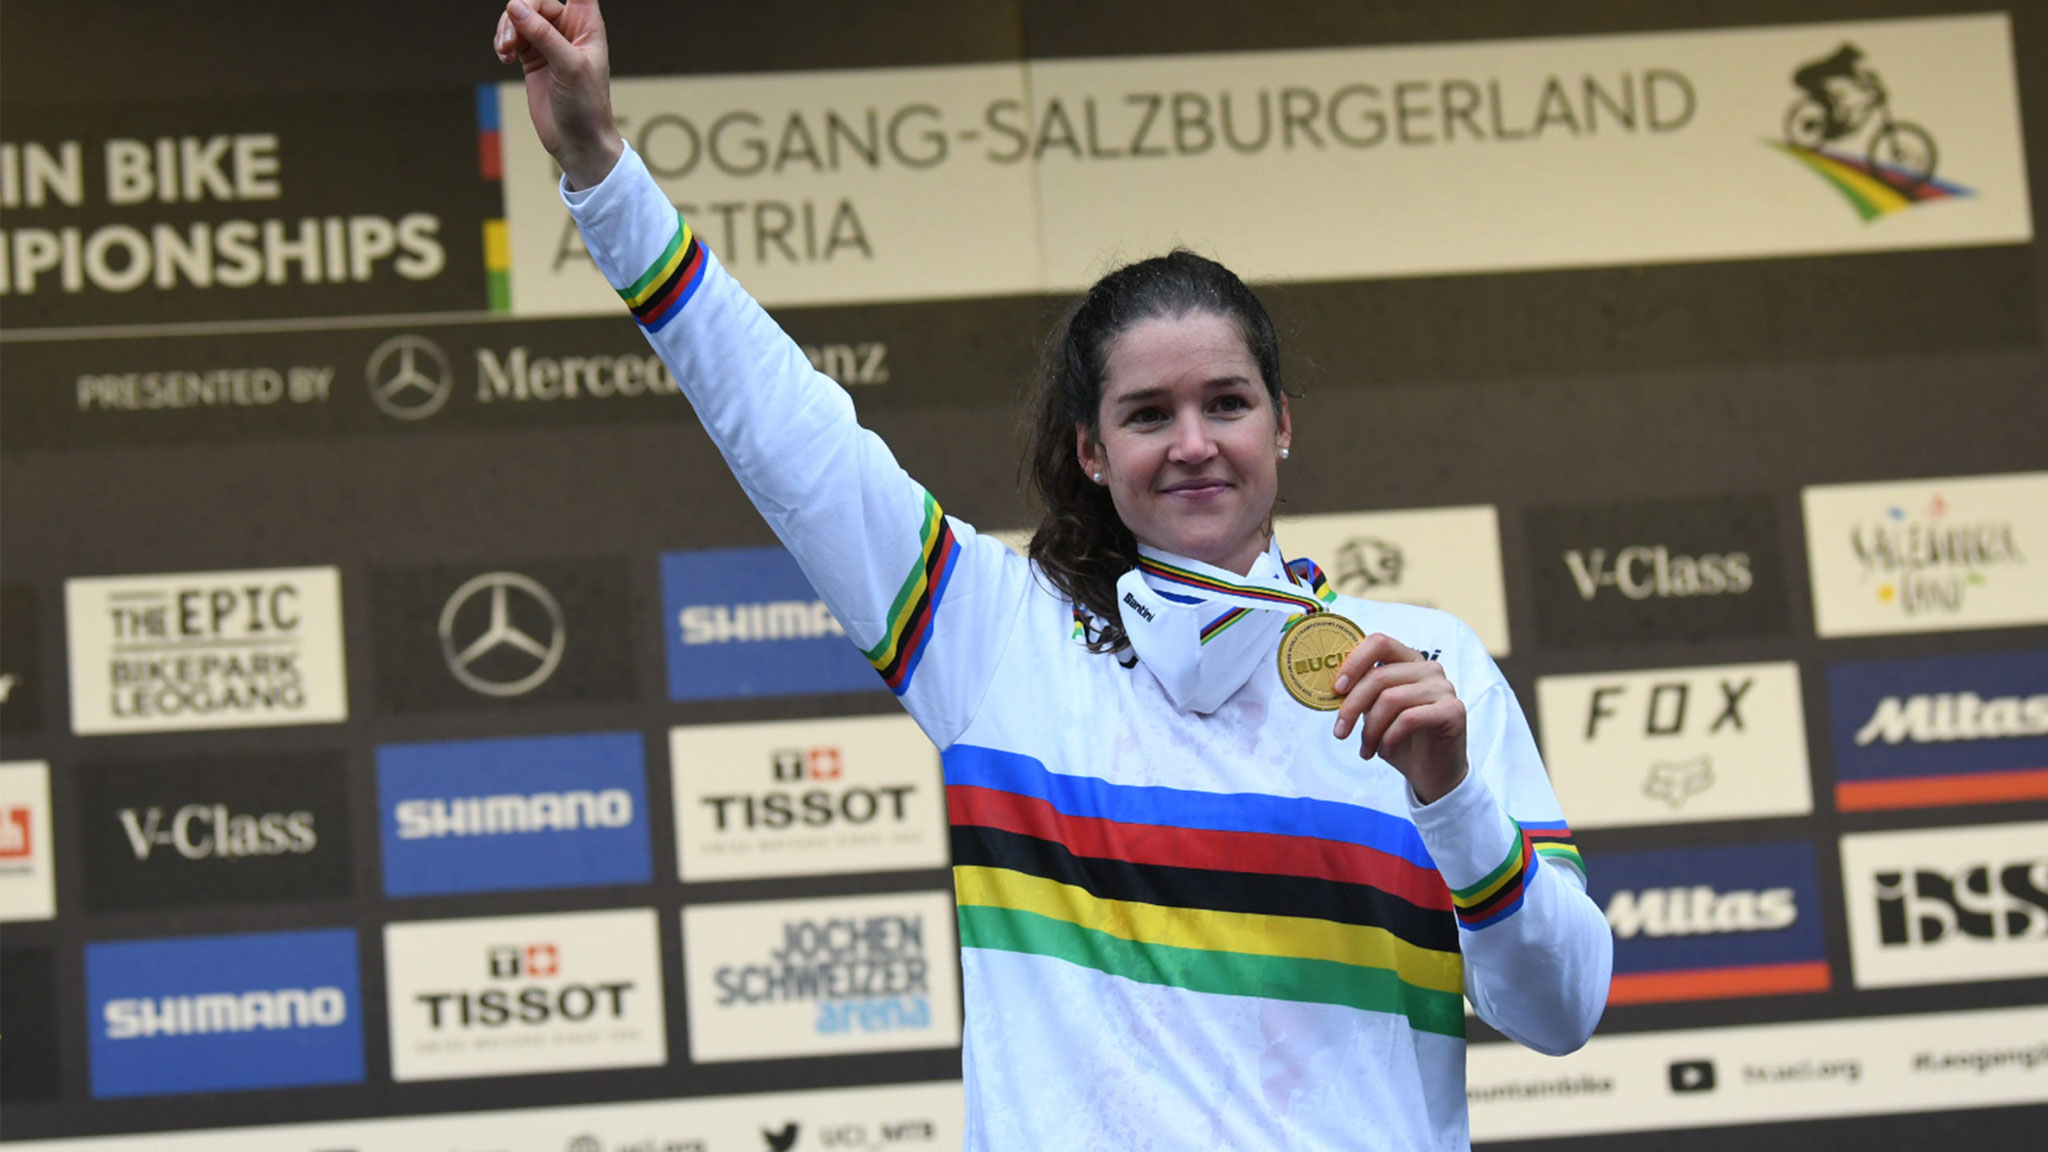 Camille Balanche - MTB Downhill - Weltmeisterin 2020